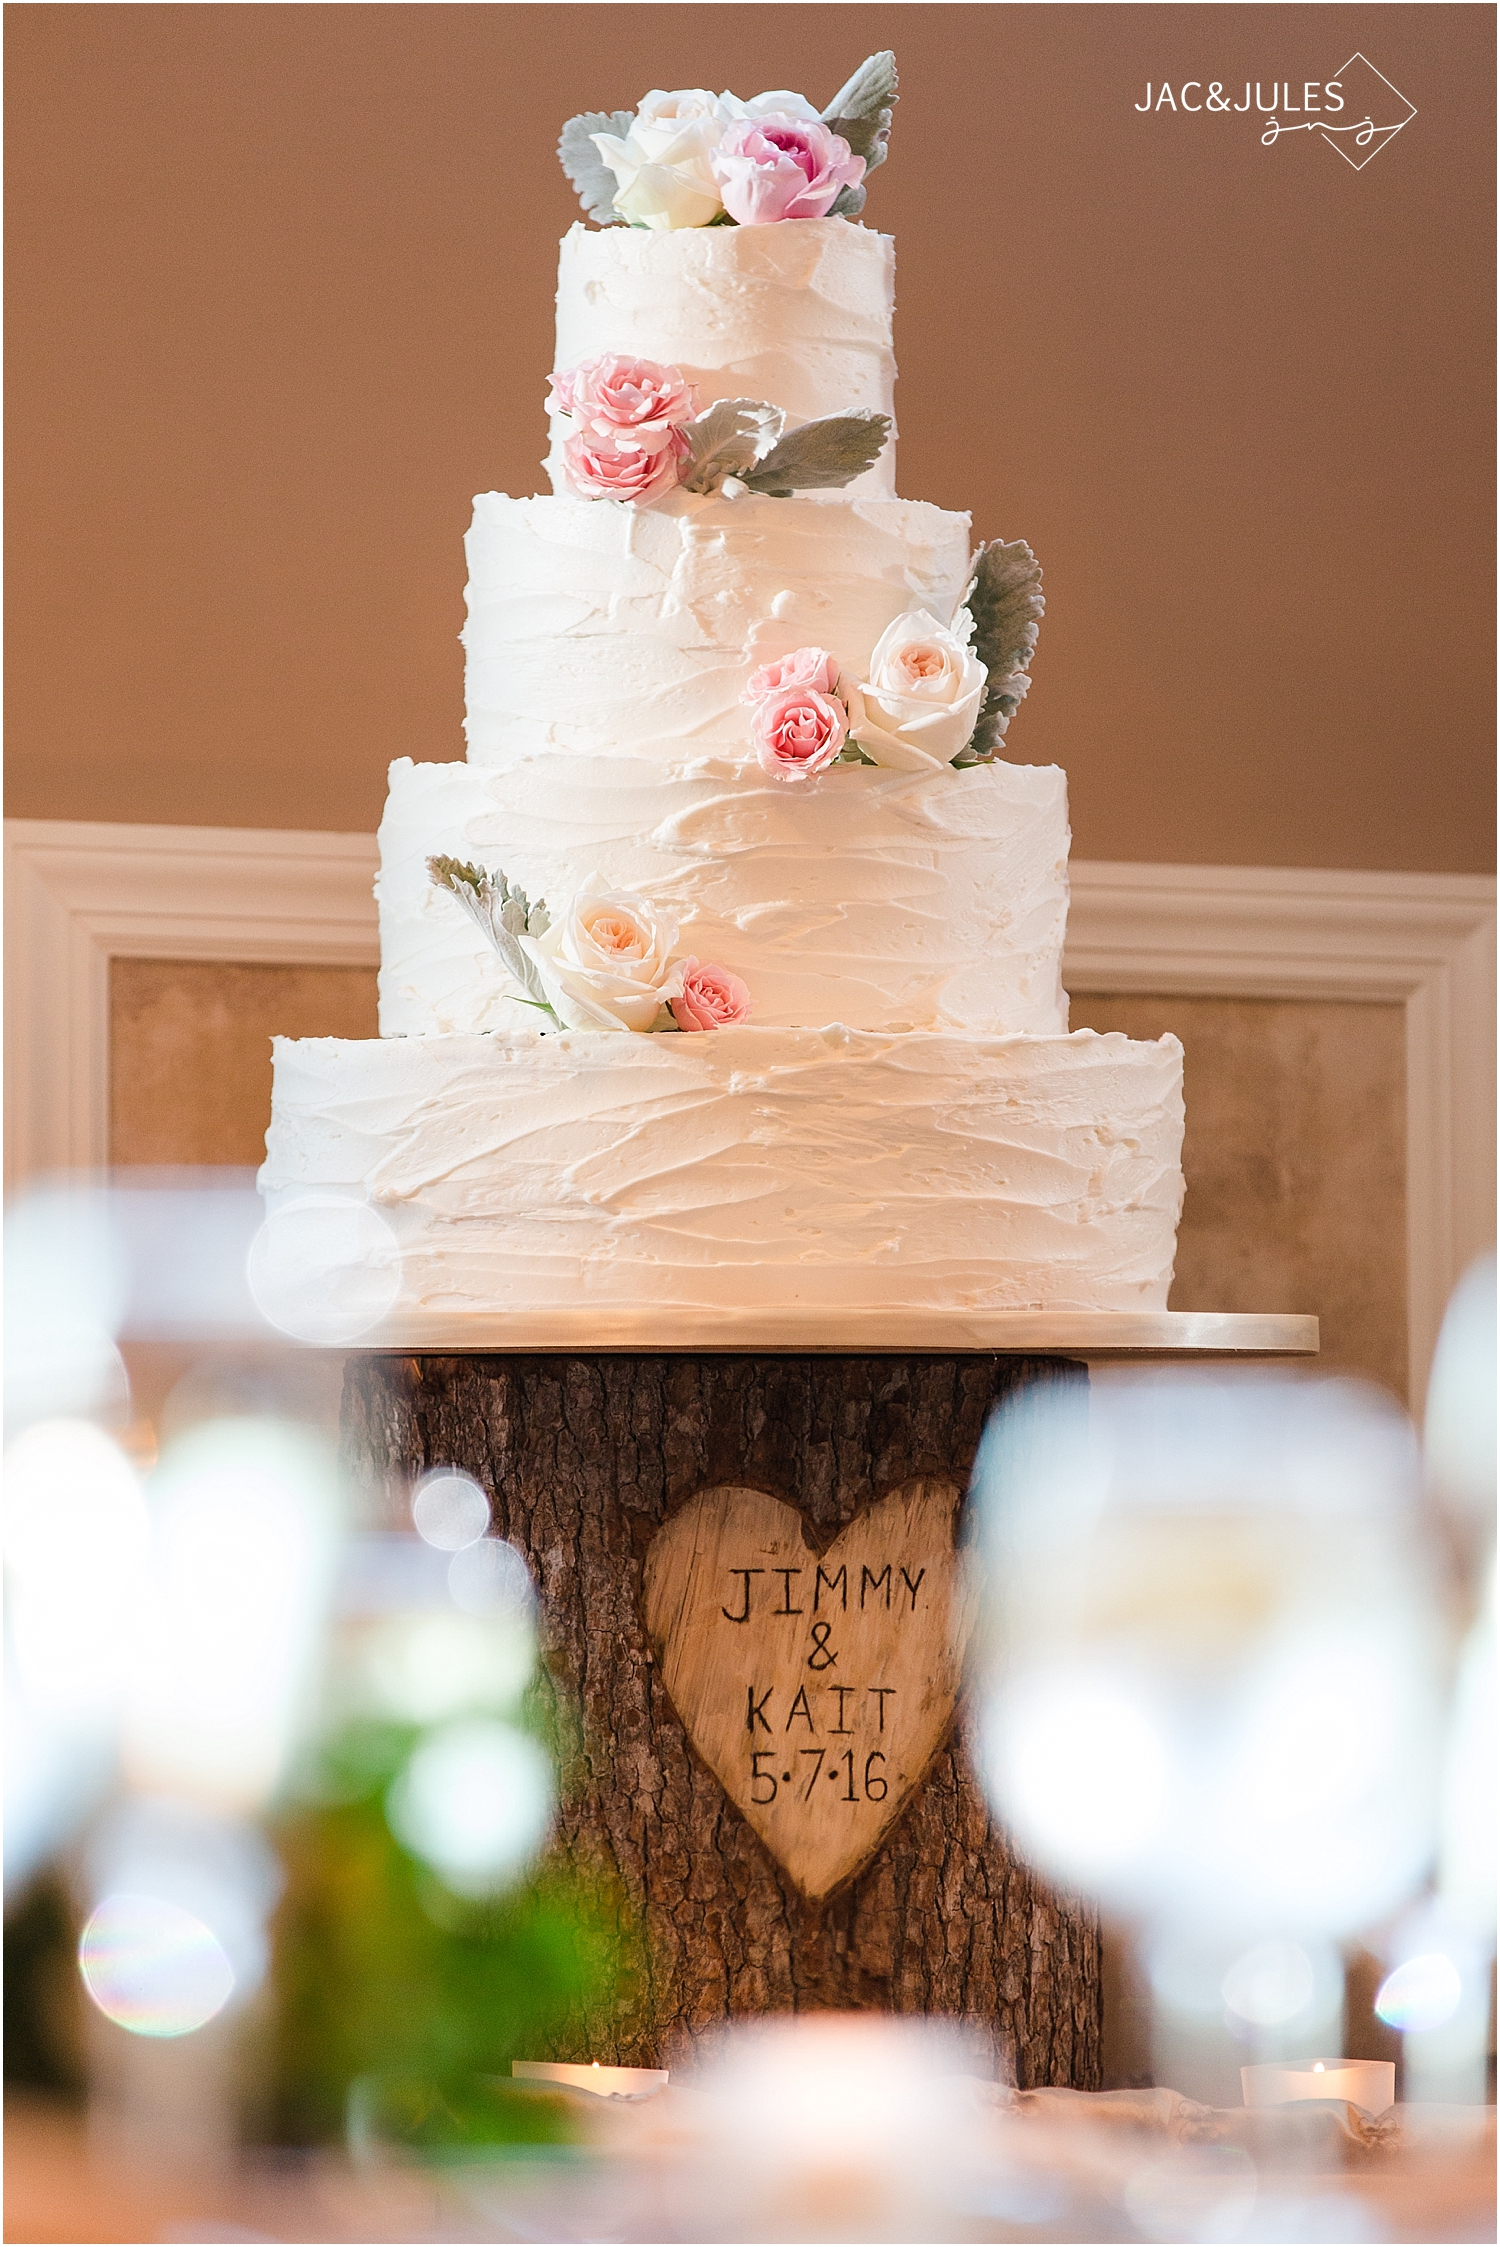 jacnjules photographs Carlo's Bakery Cake and rustic wood slice stand at Oyster Point in Red Bank NJ